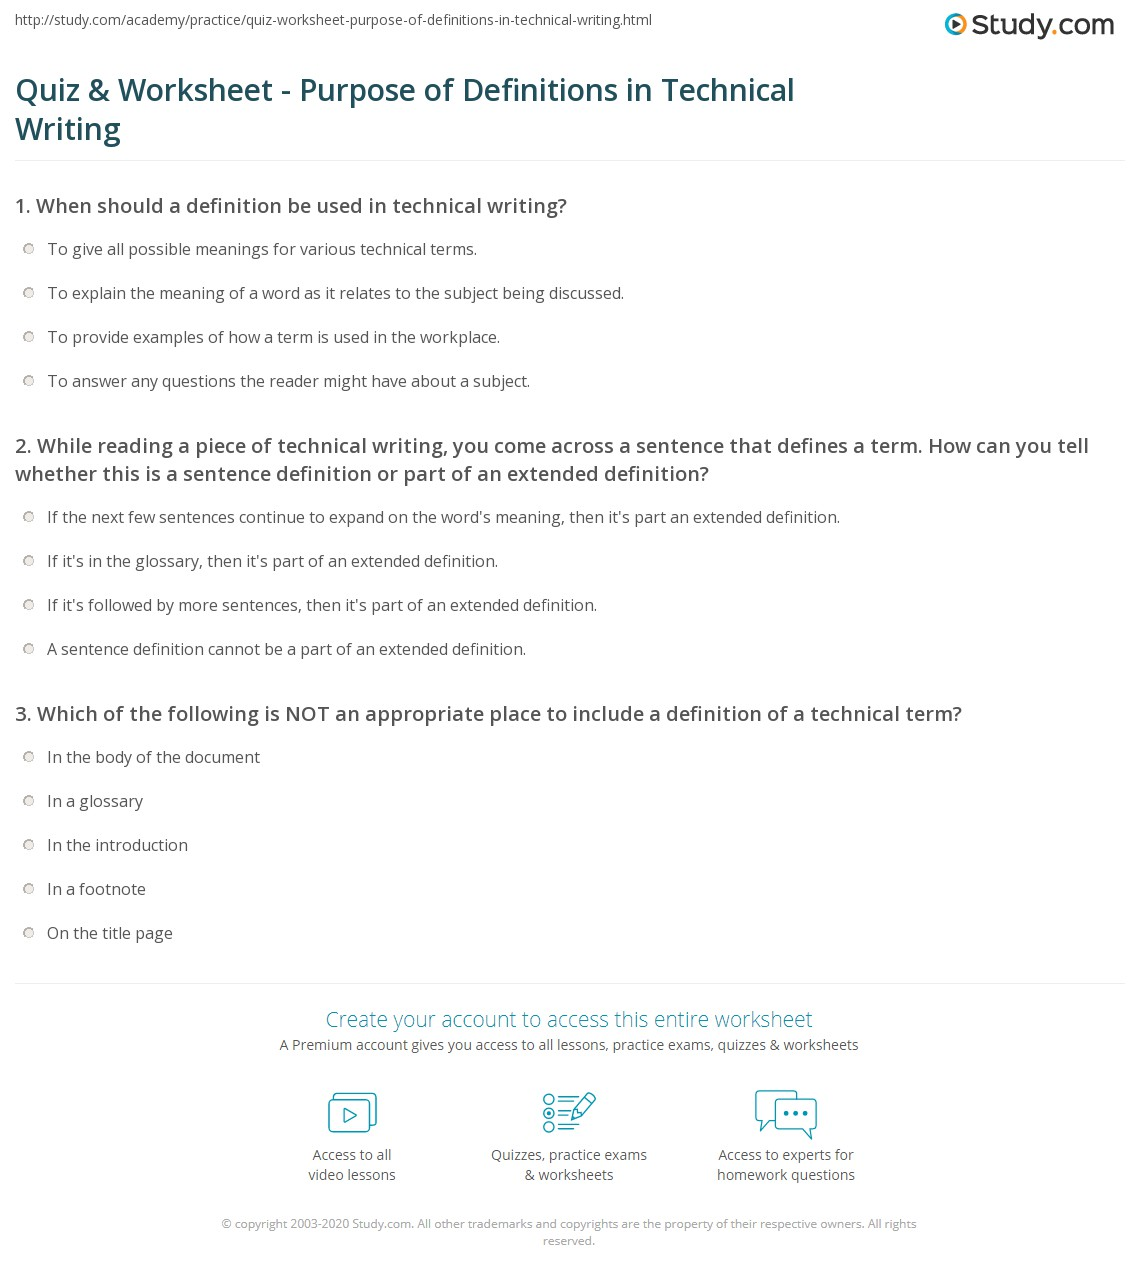 Uncategorized Definition Of Worksheet quiz worksheet purpose of definitions in technical writing while reading a piece you come across sentence that defines term how can tell whether this is sente